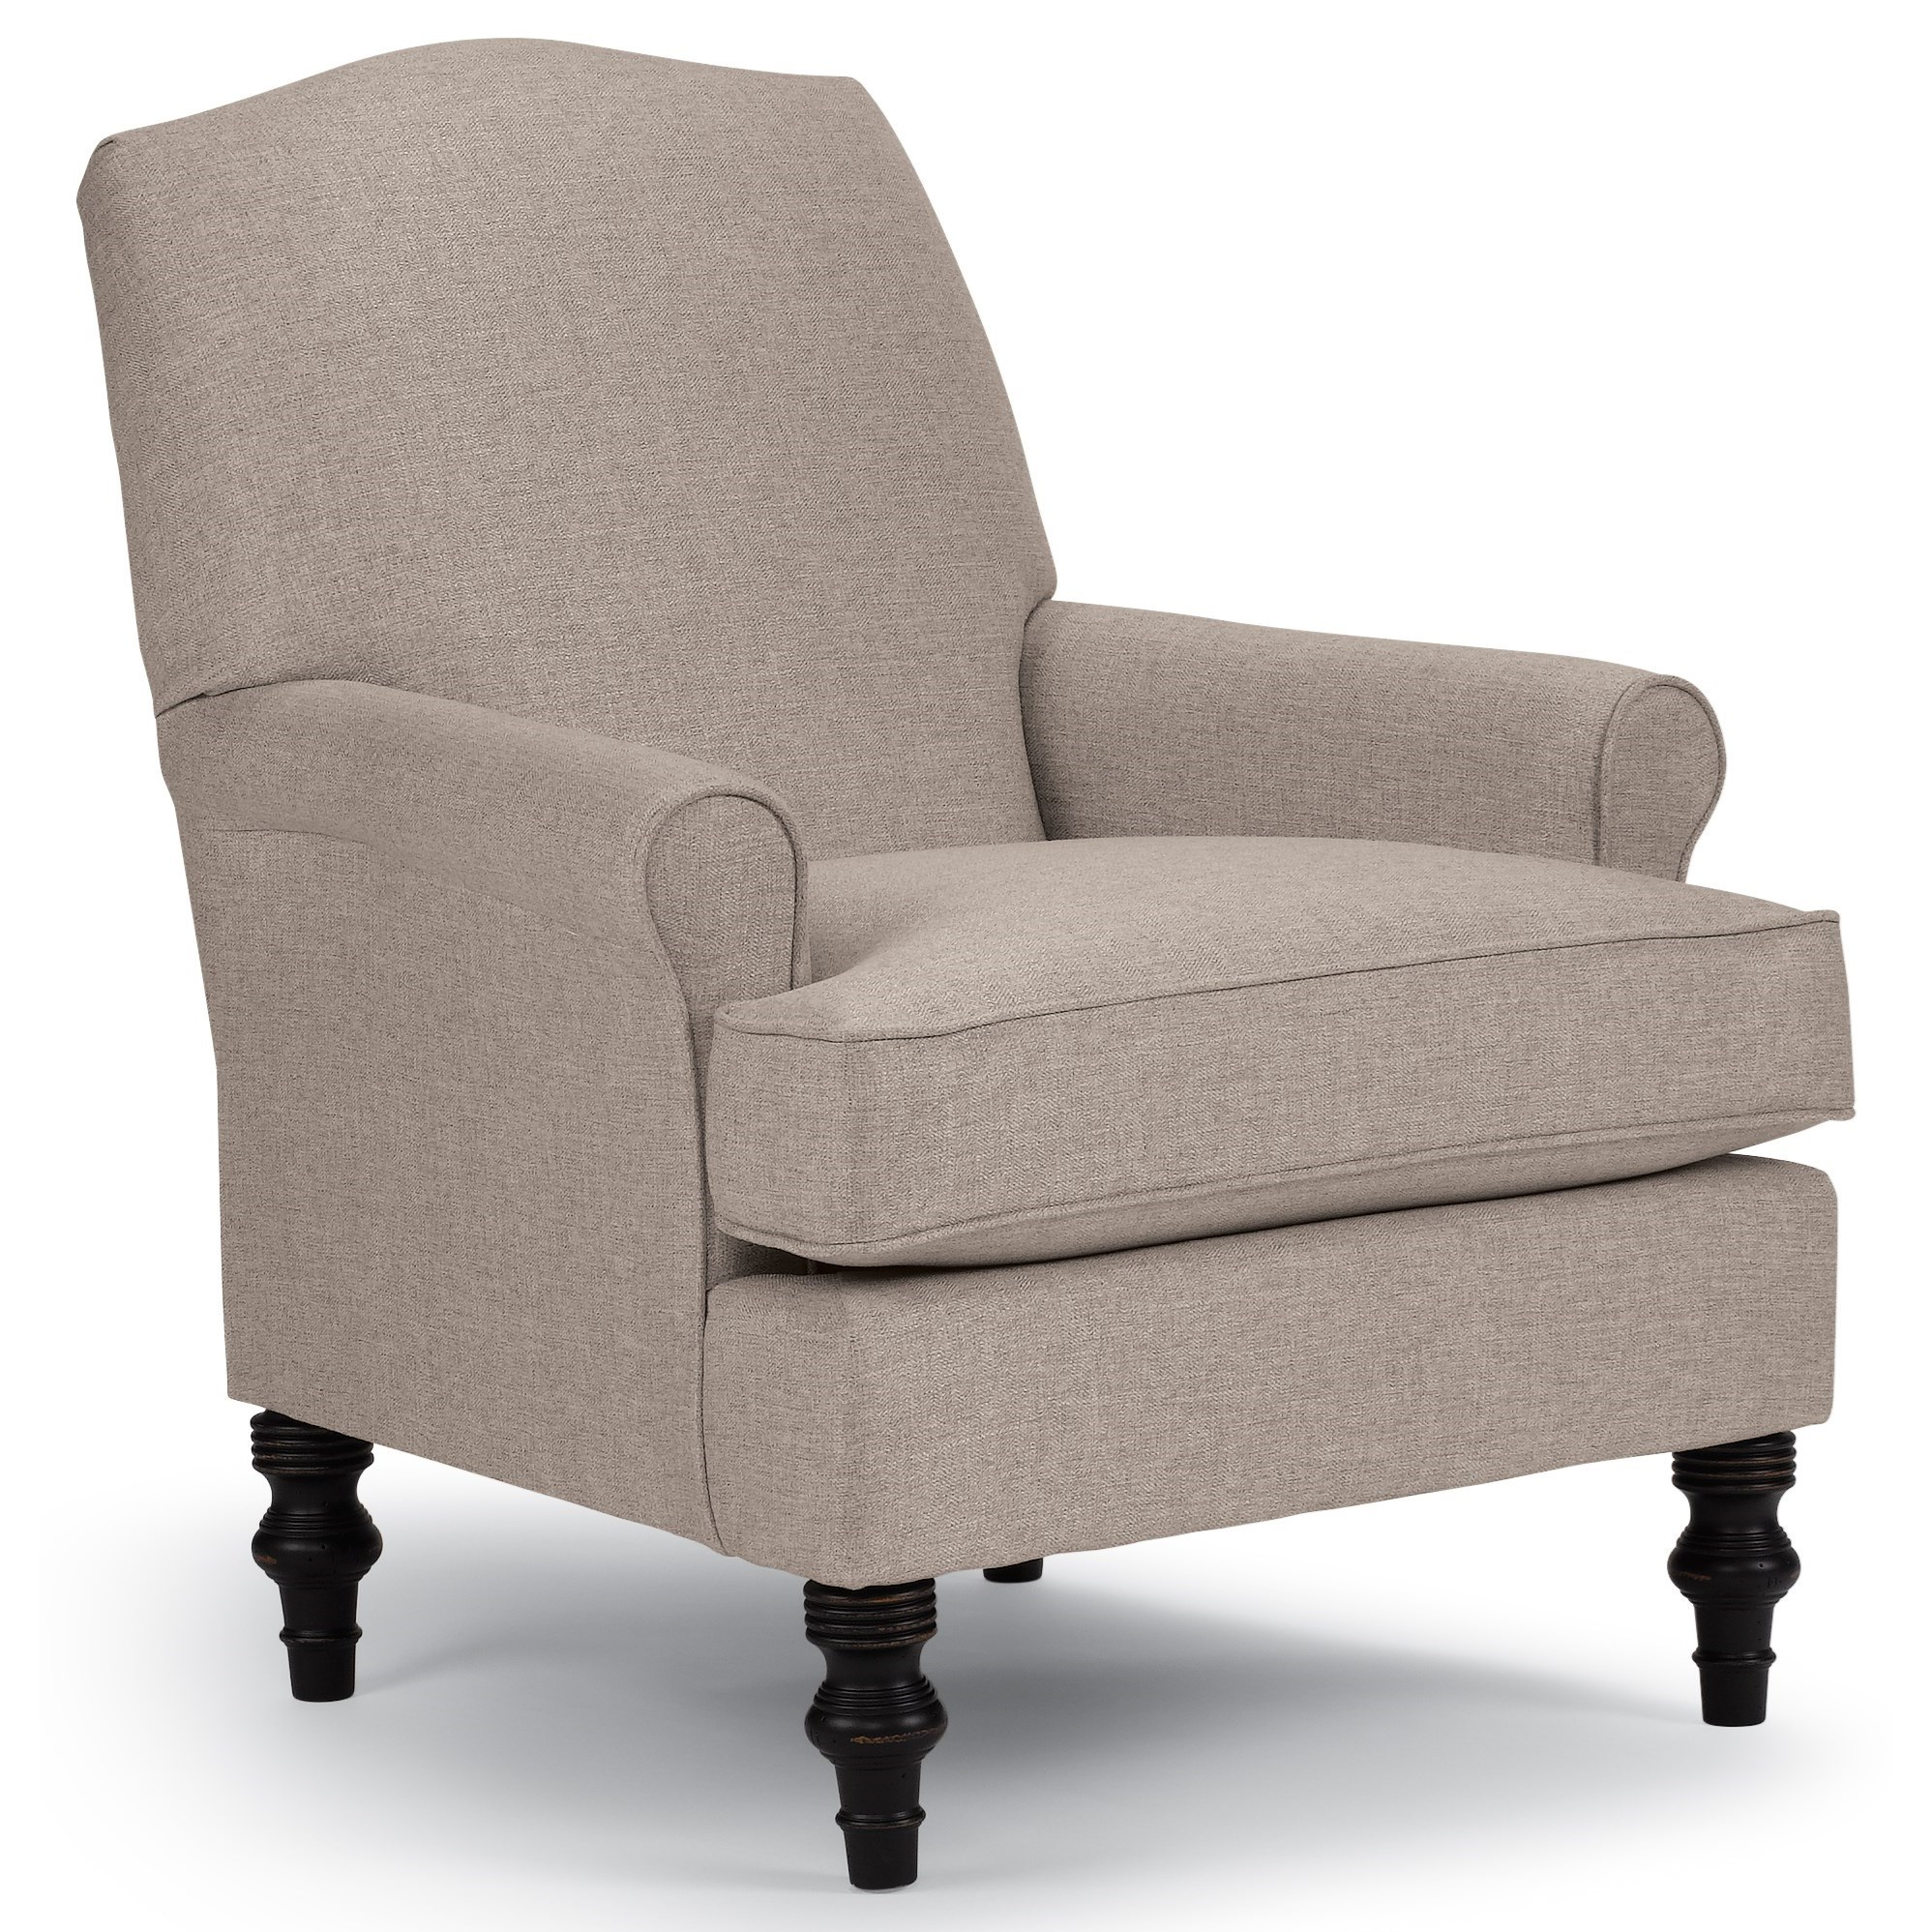 Best Home Furnishings Chairs - Club Camel-Back Club Chair - Item Number: 4210